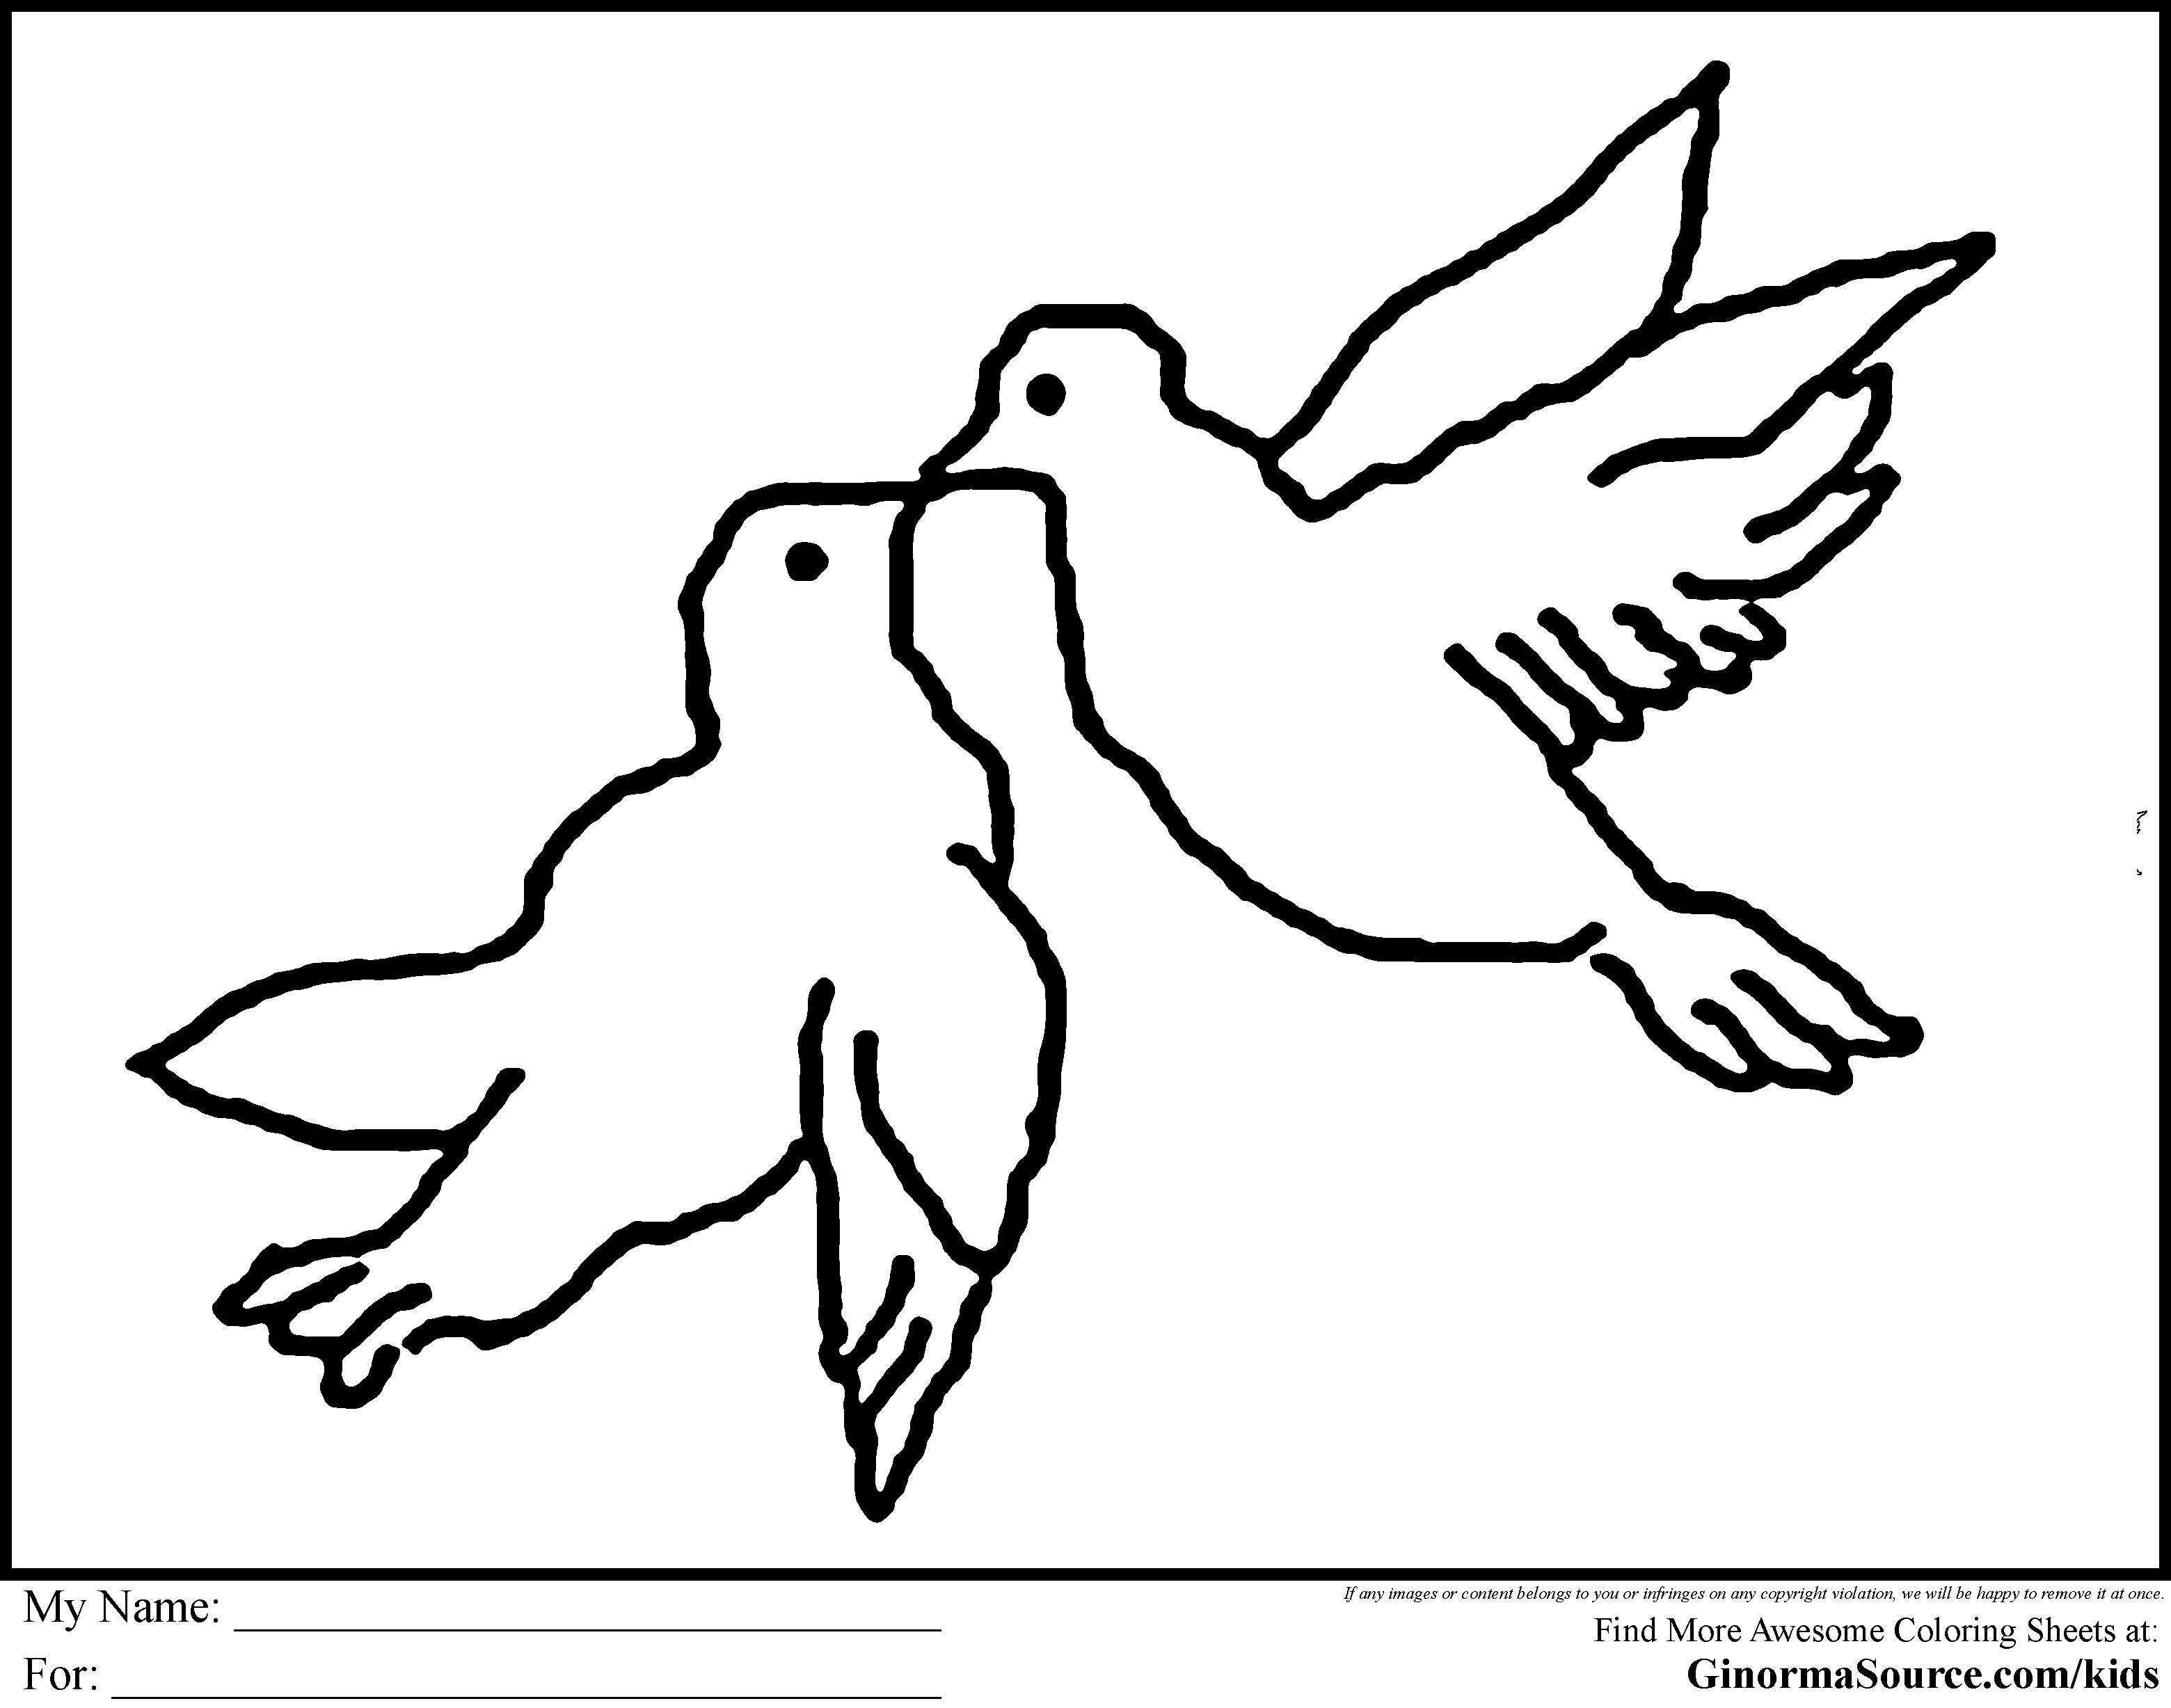 Turtle Doves Drawing at GetDrawings.com | Free for personal use ...